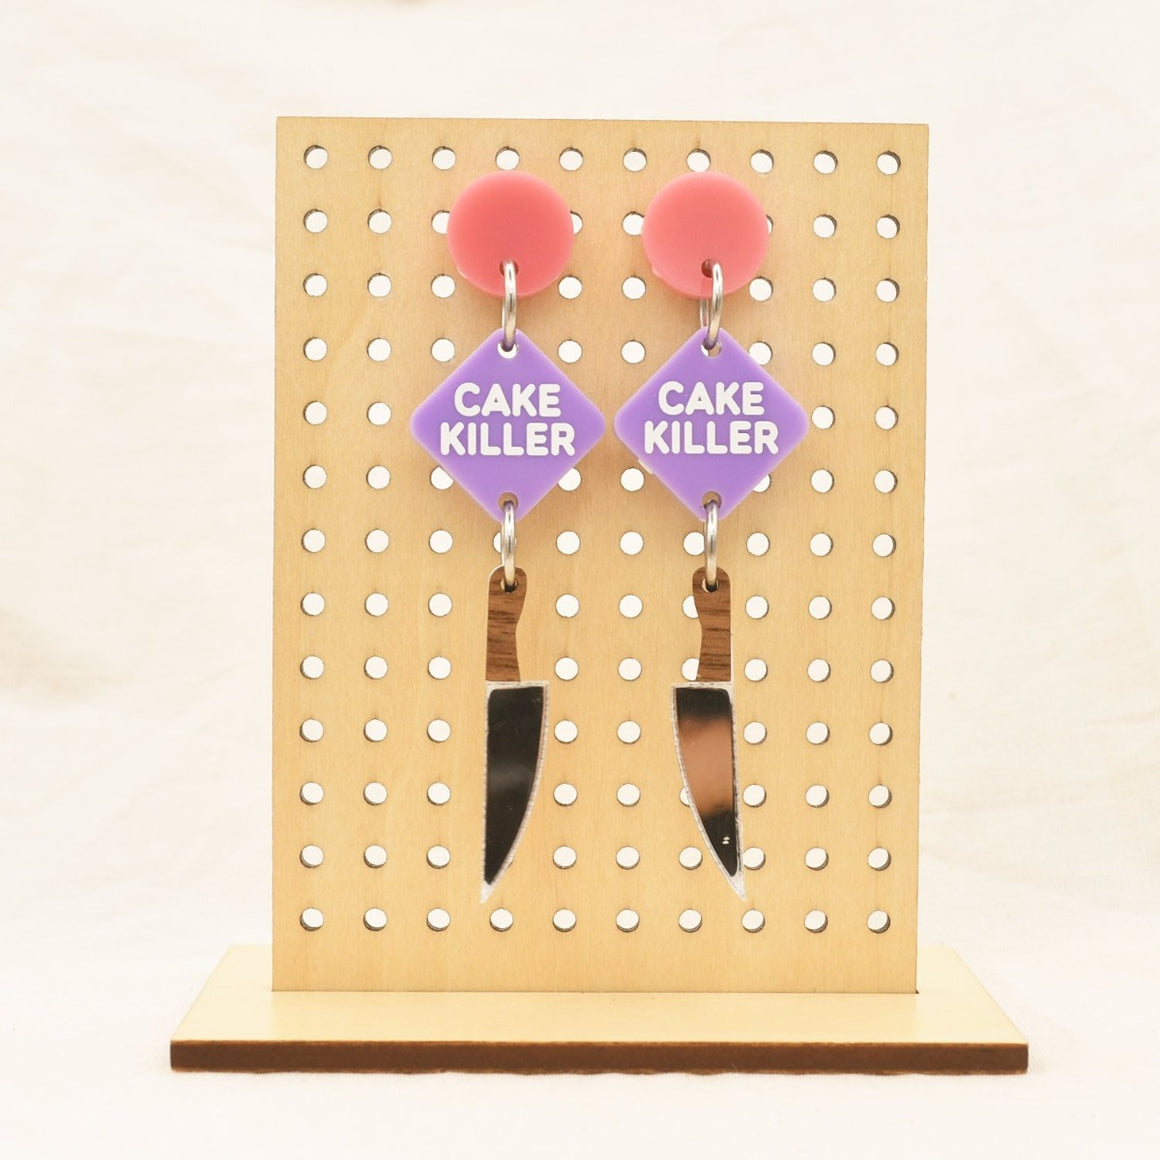 Image featuring a tanned wood stand holding two graphically illustrated earrings both featuring a pink circle, purple square with the words Cake Killer on them and then a knife below